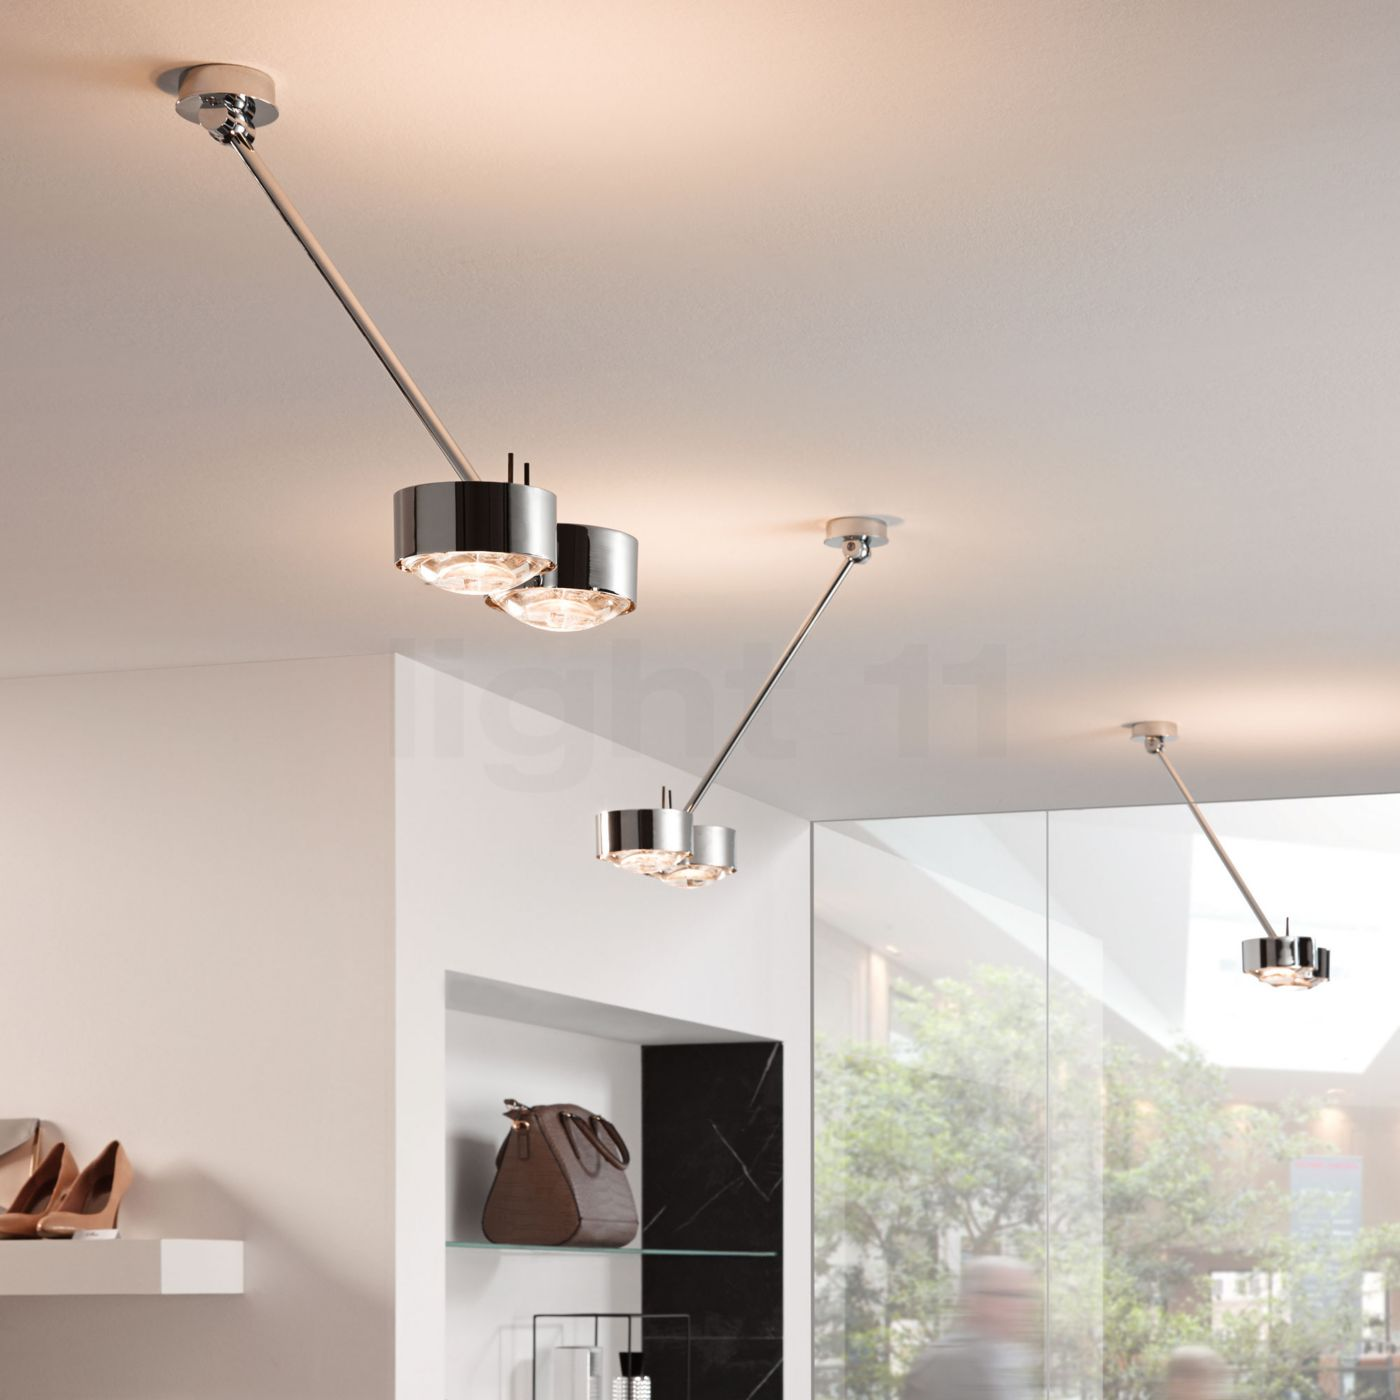 Puk Top Light top light puk maxx wing ceiling 60 cm led decentralised ceiling